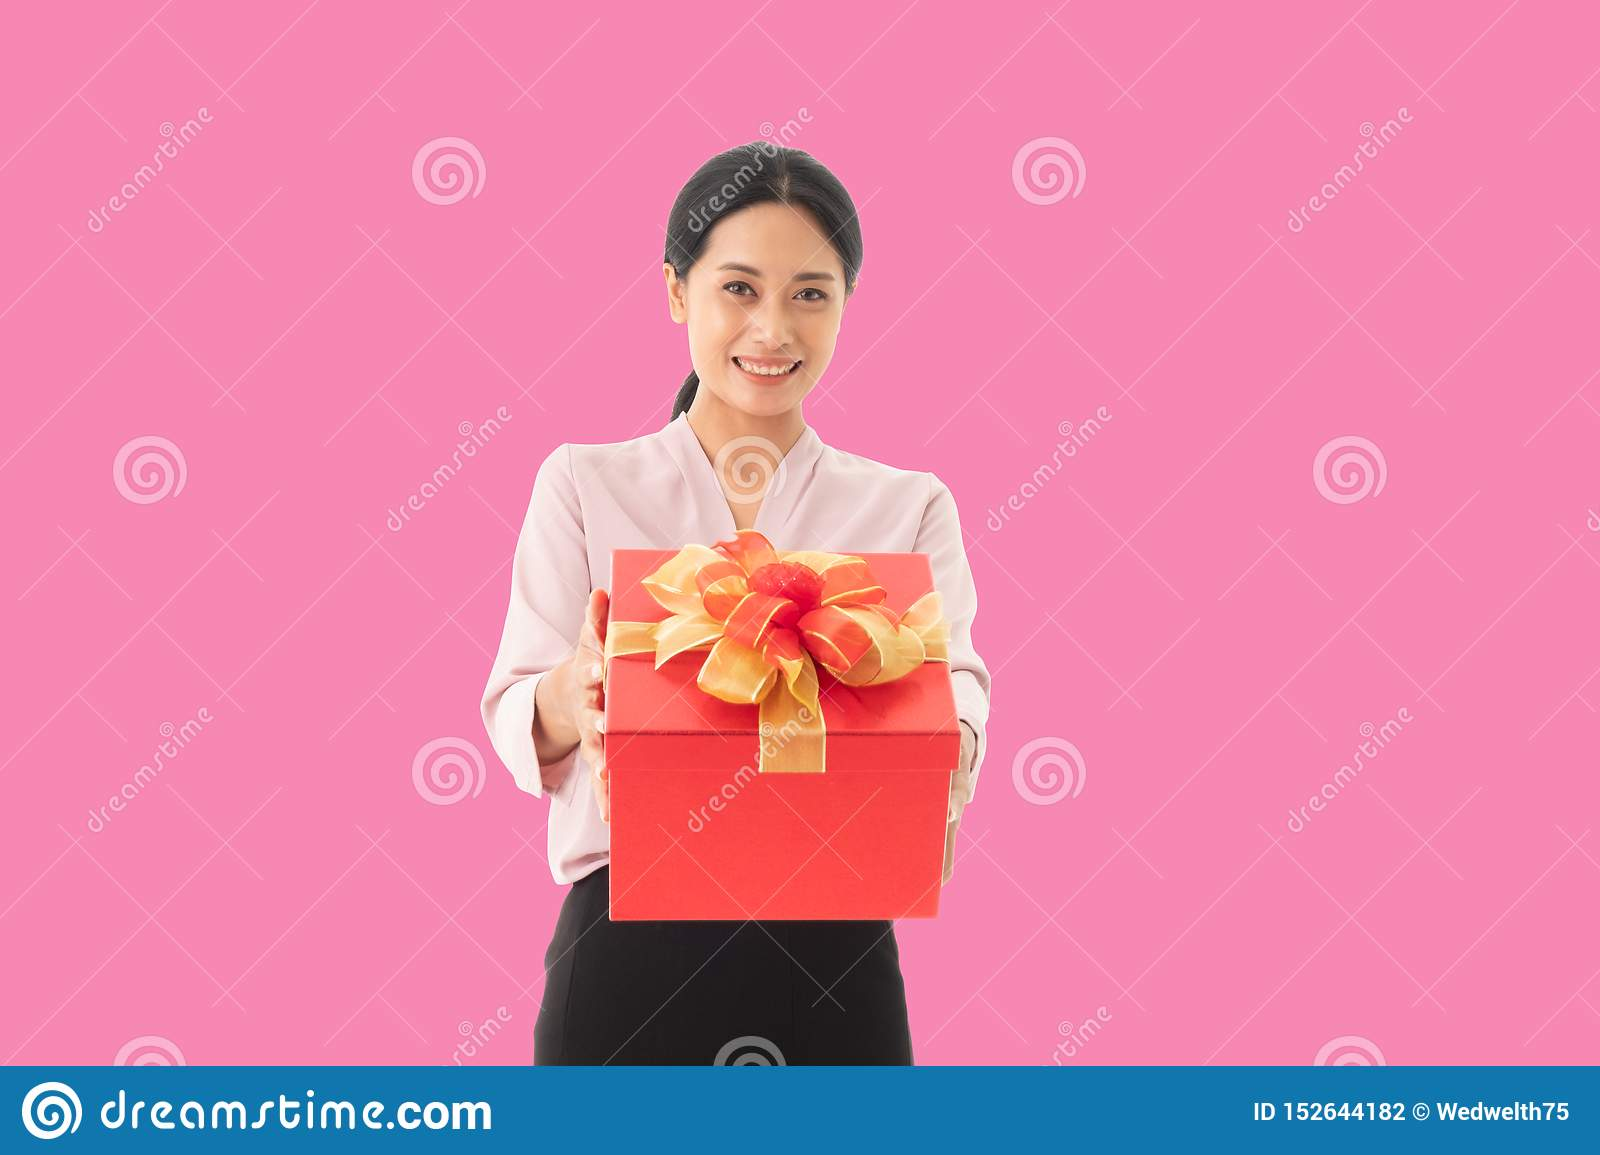 Portrait of a happy smiling girl holding gift box